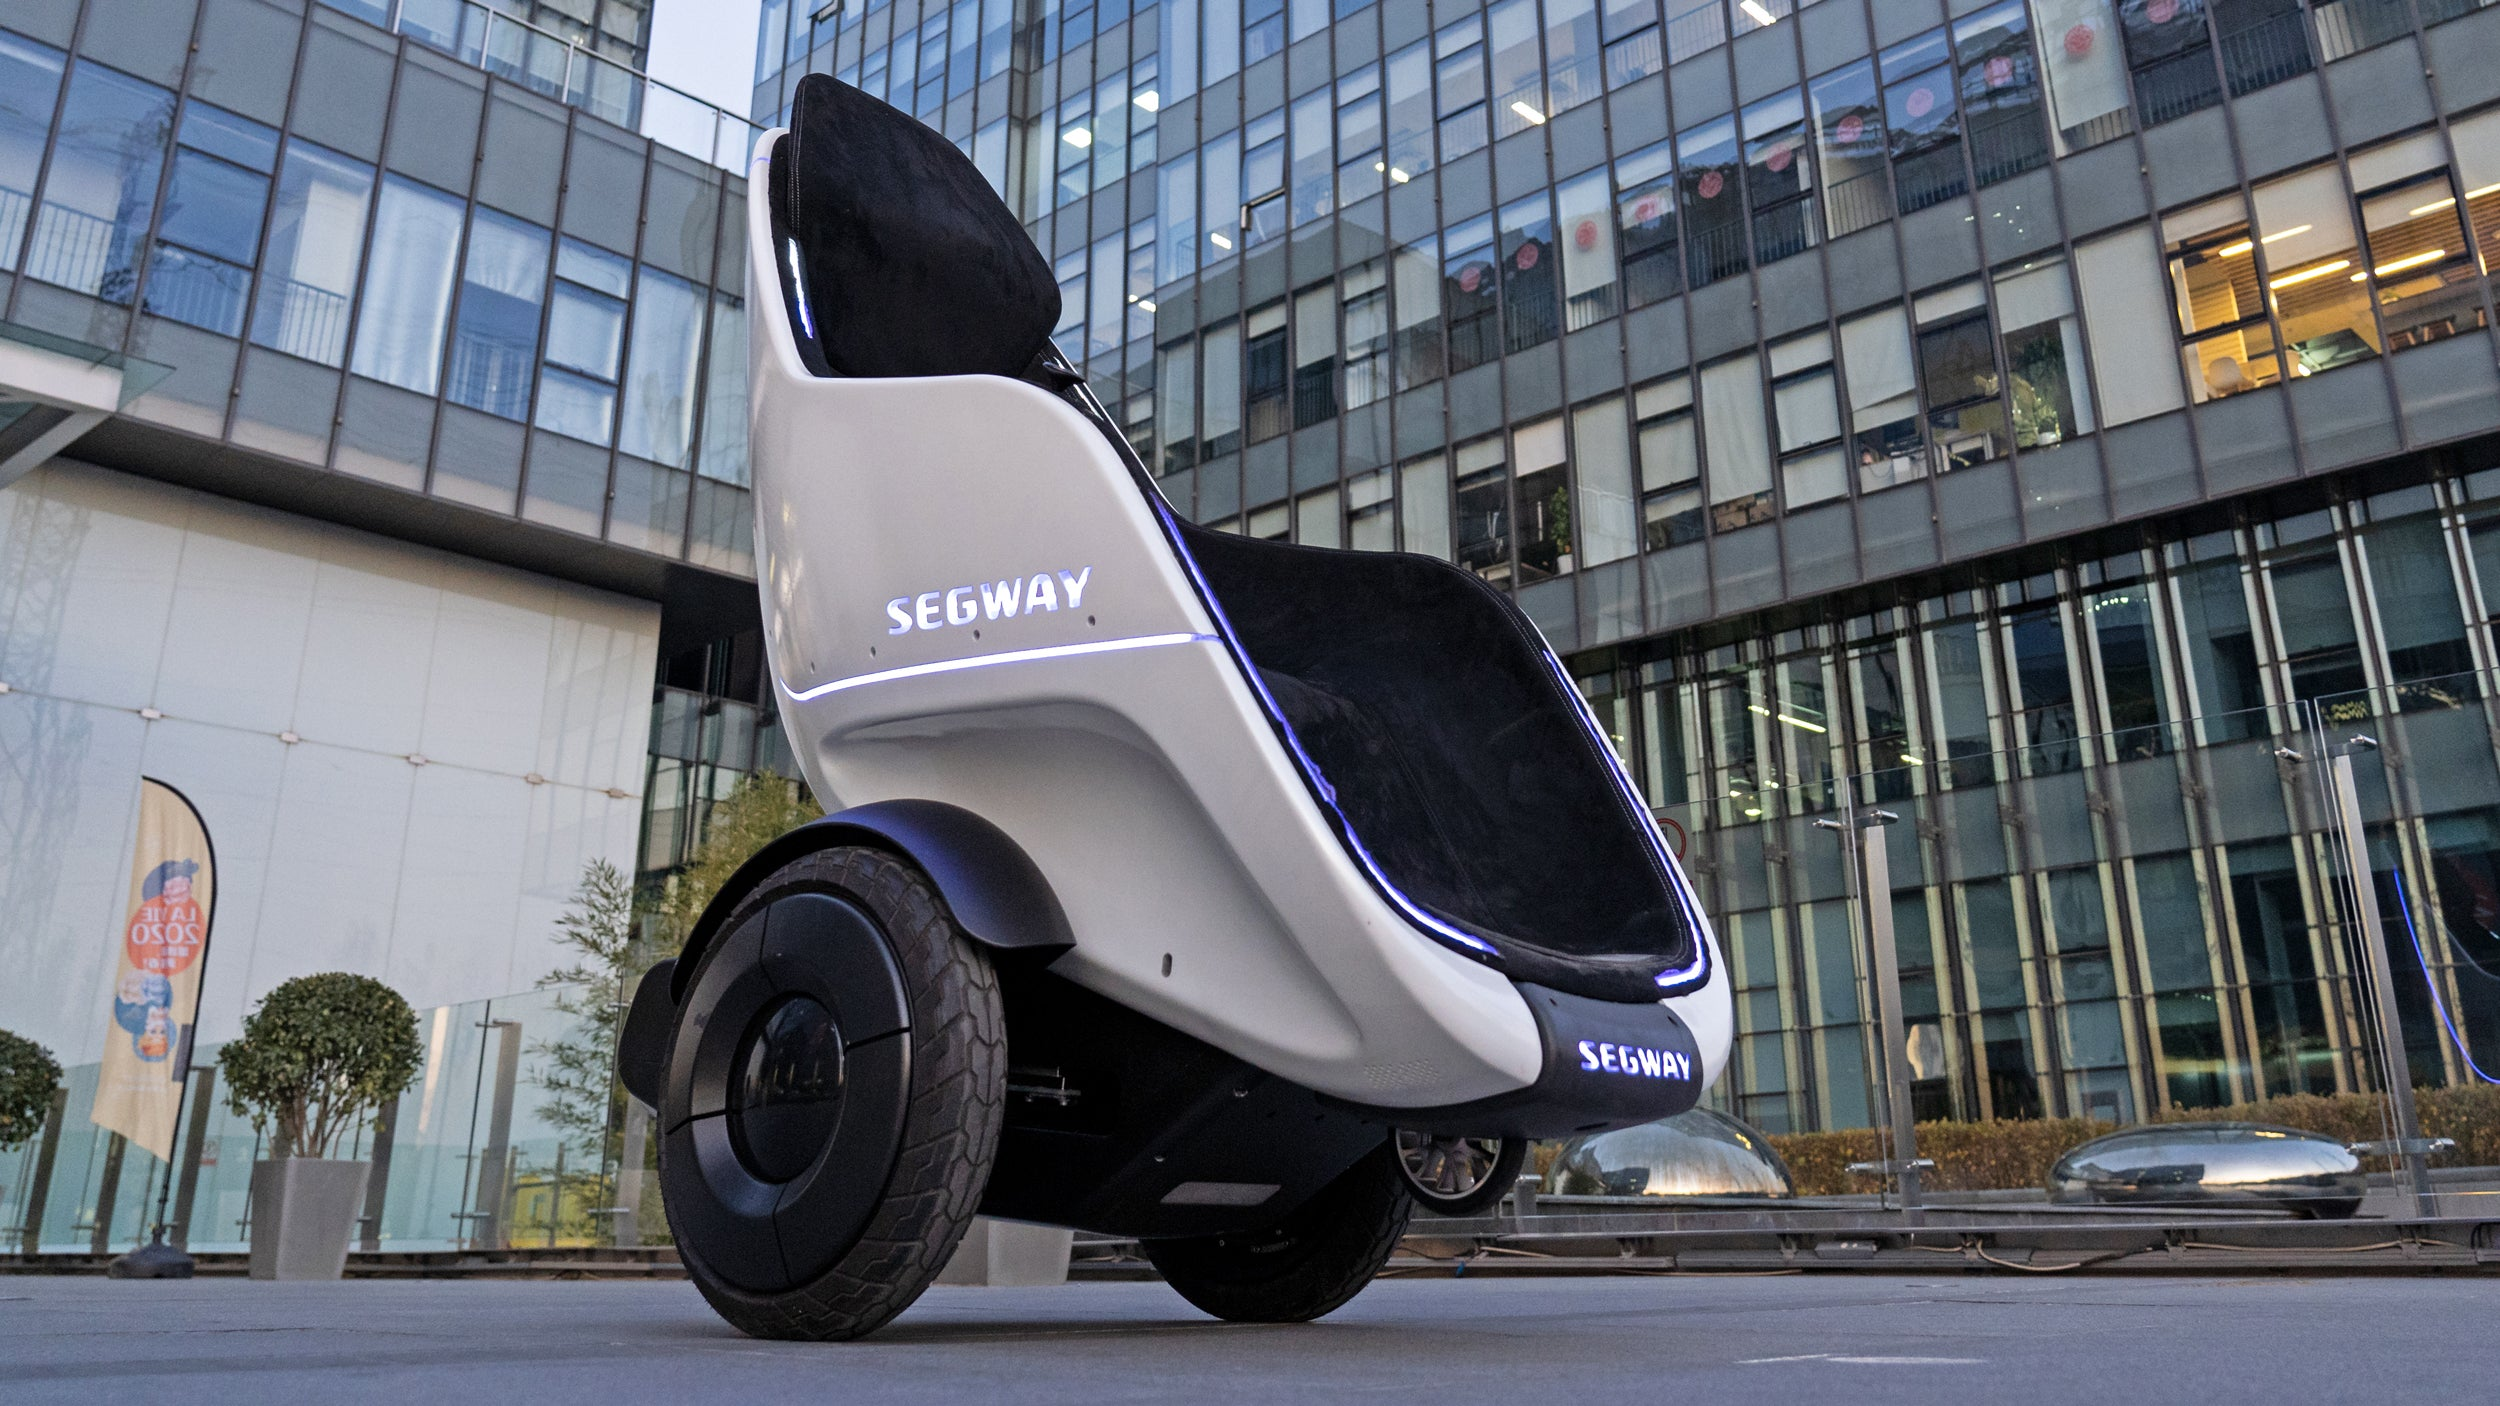 Segway Makes A Self-Balancing Stroller For Adults